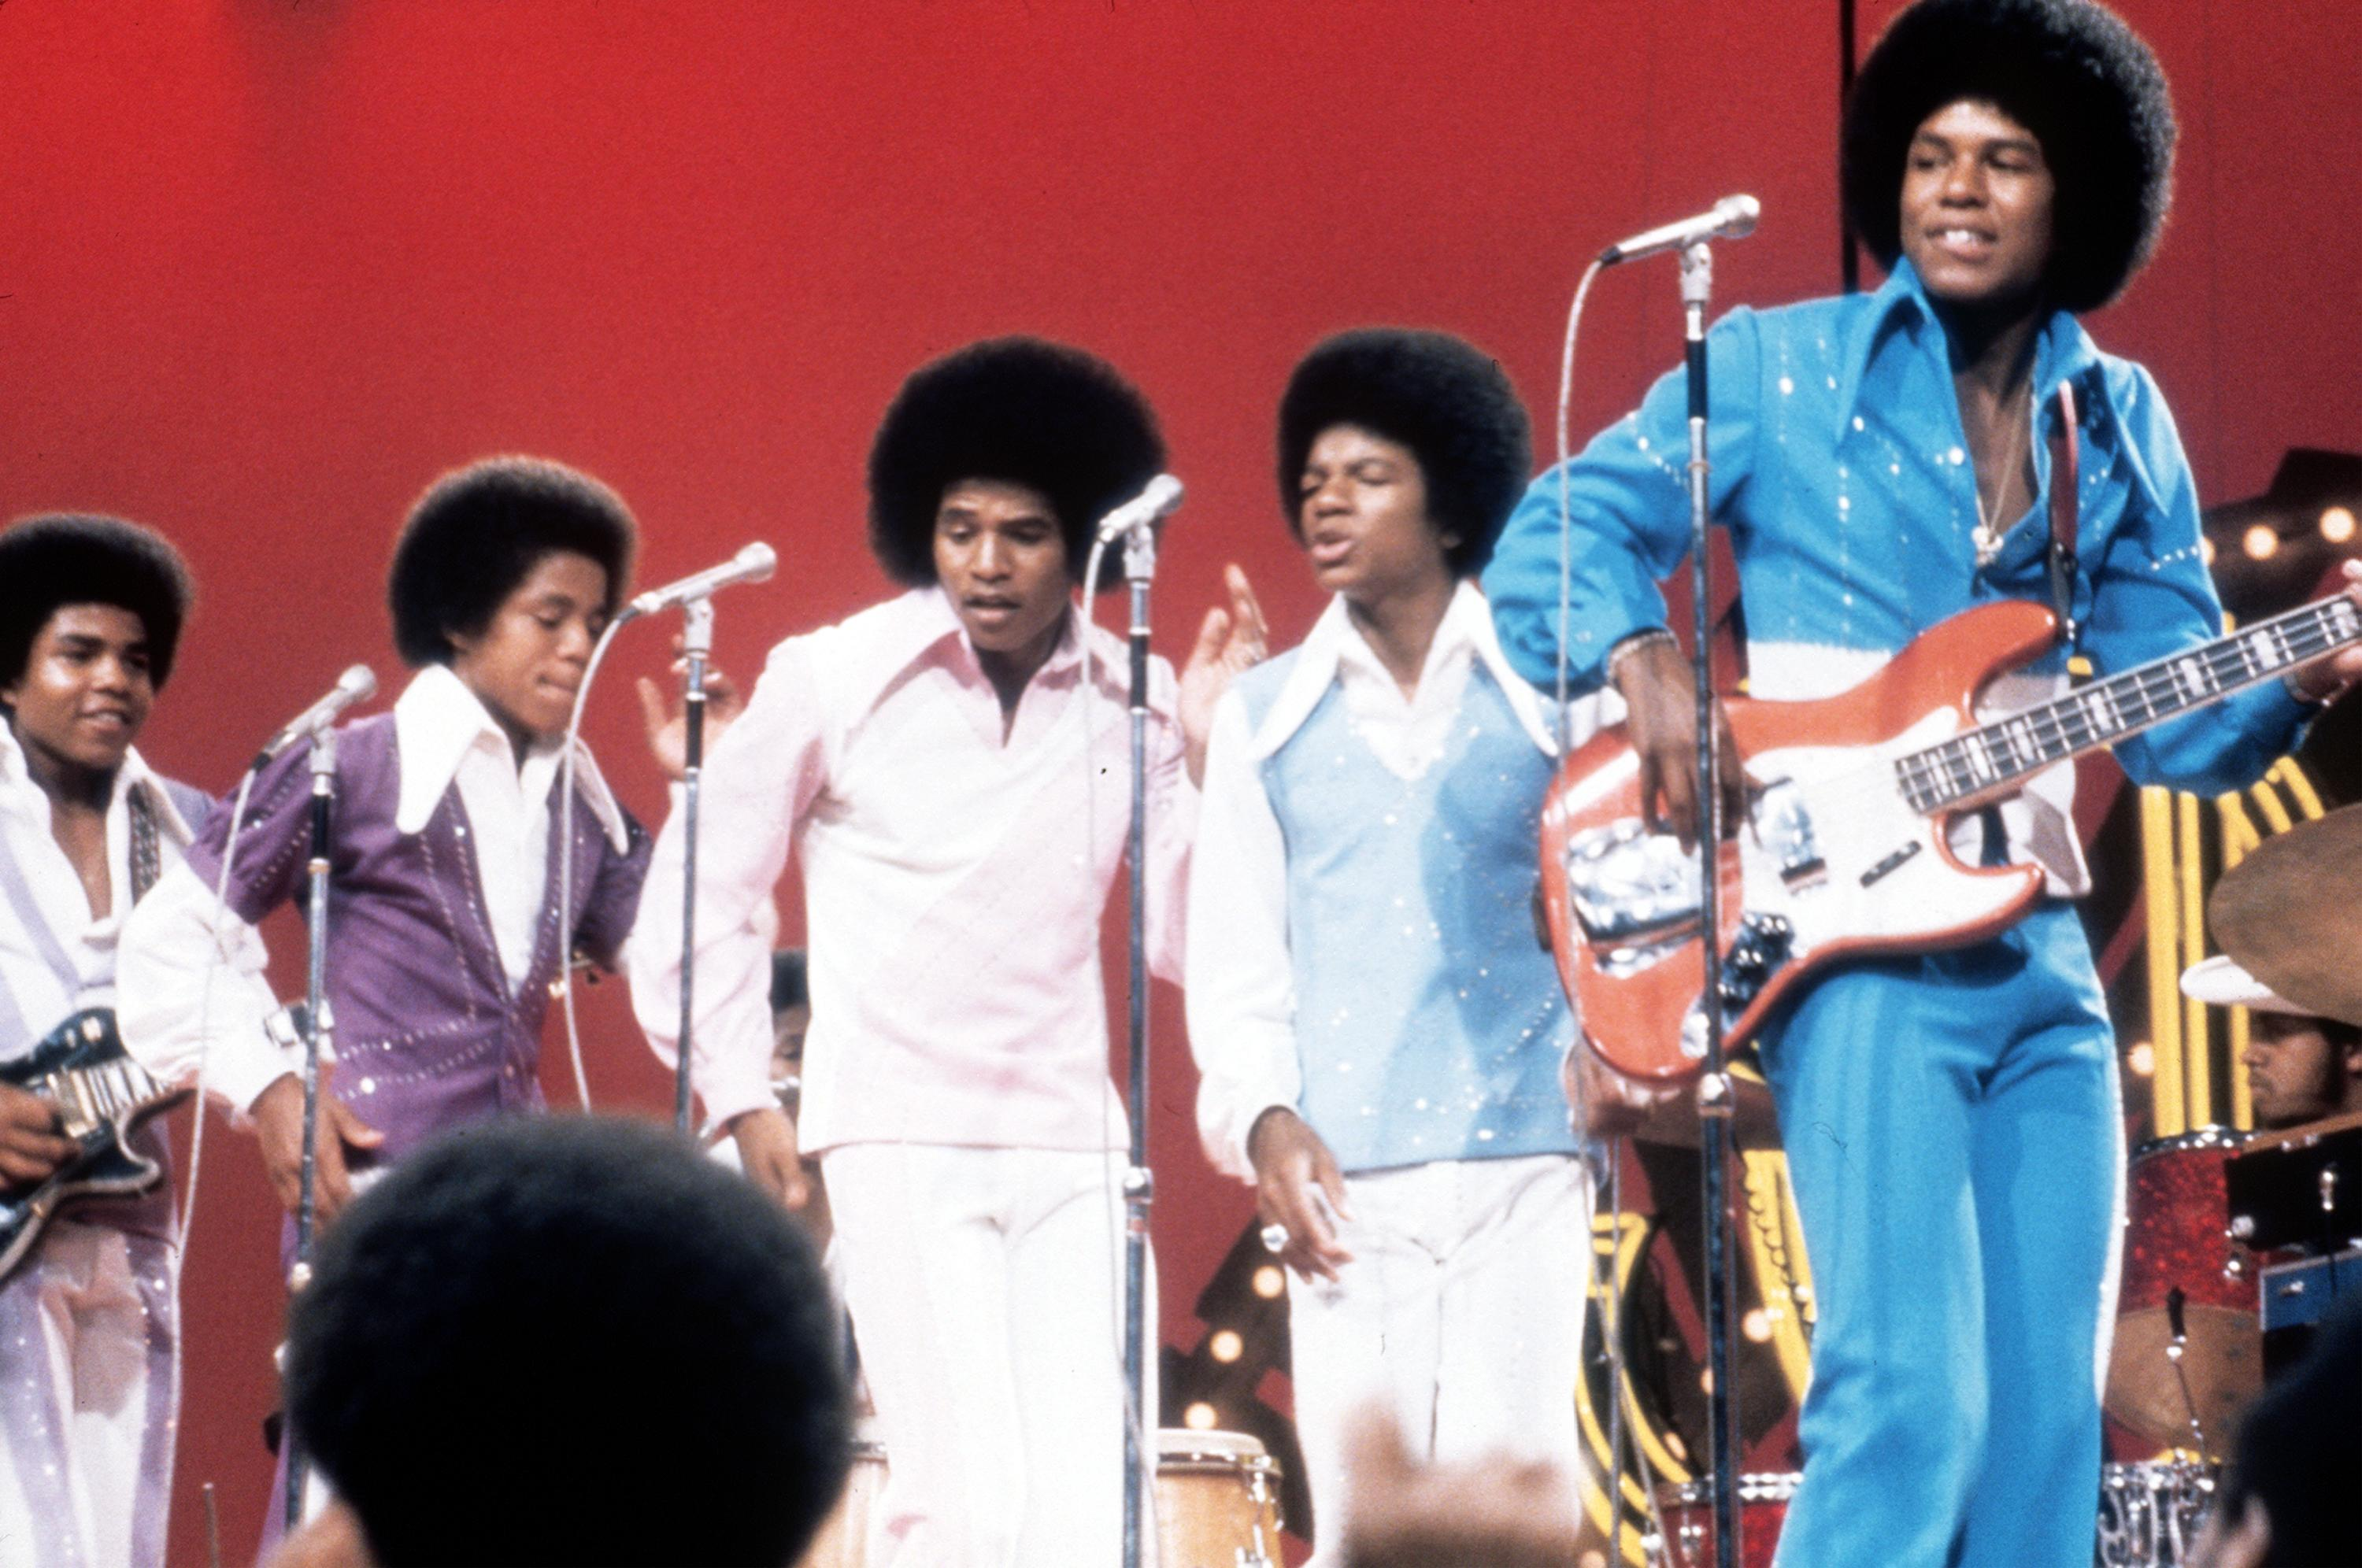 The Jacksons on stage